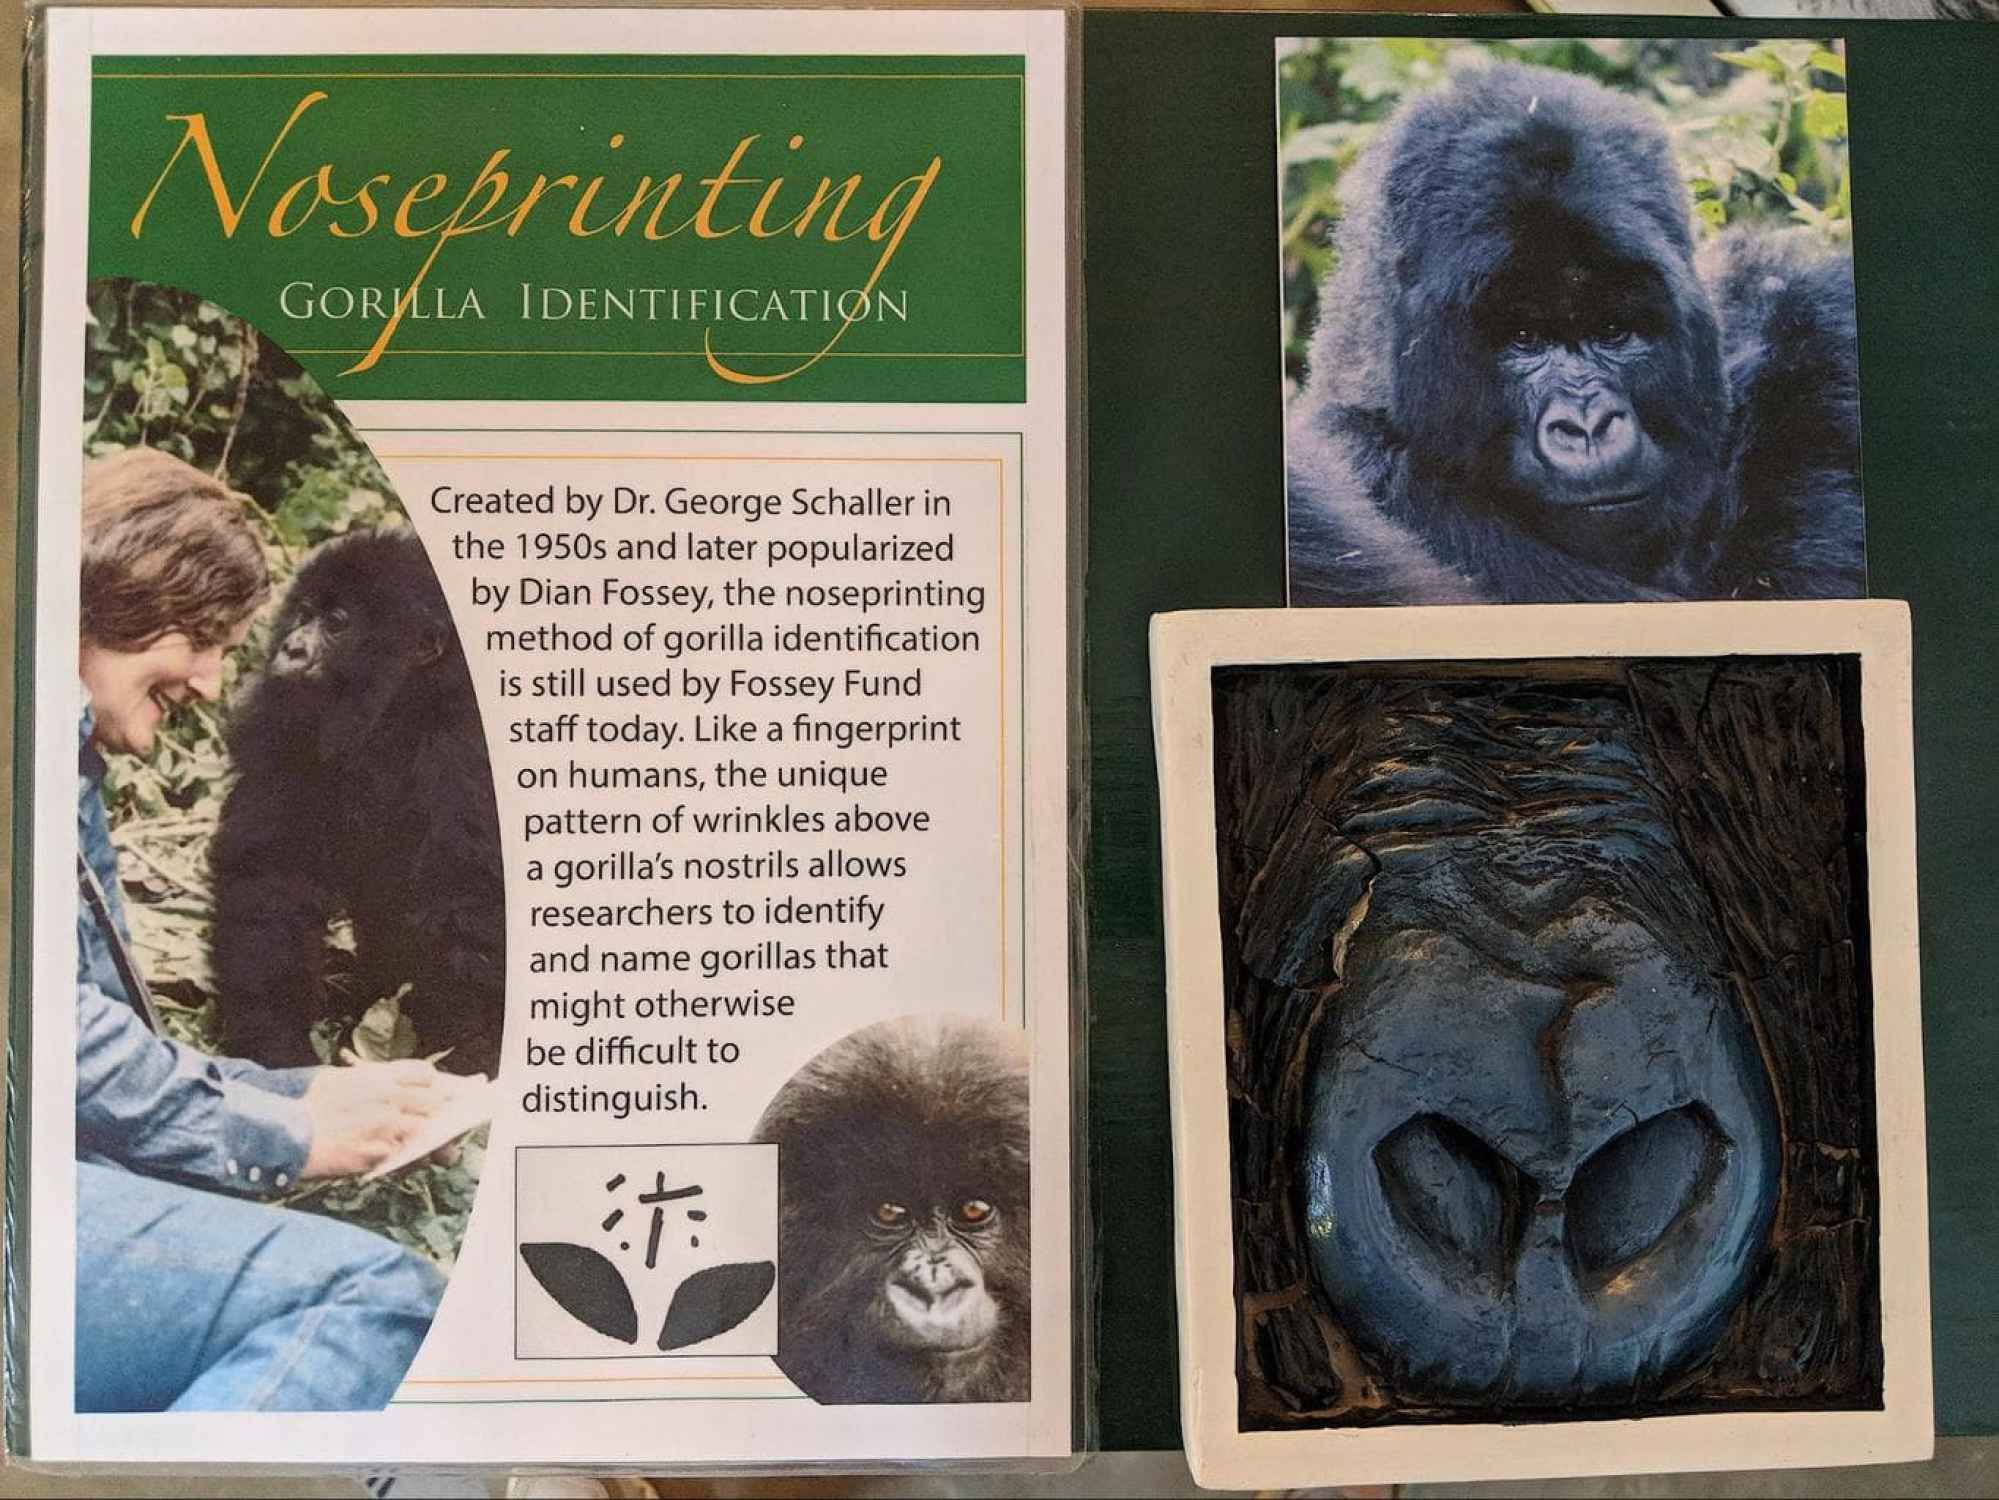 Noseprint explanation from the Gorilla Fund museum in Rwanda